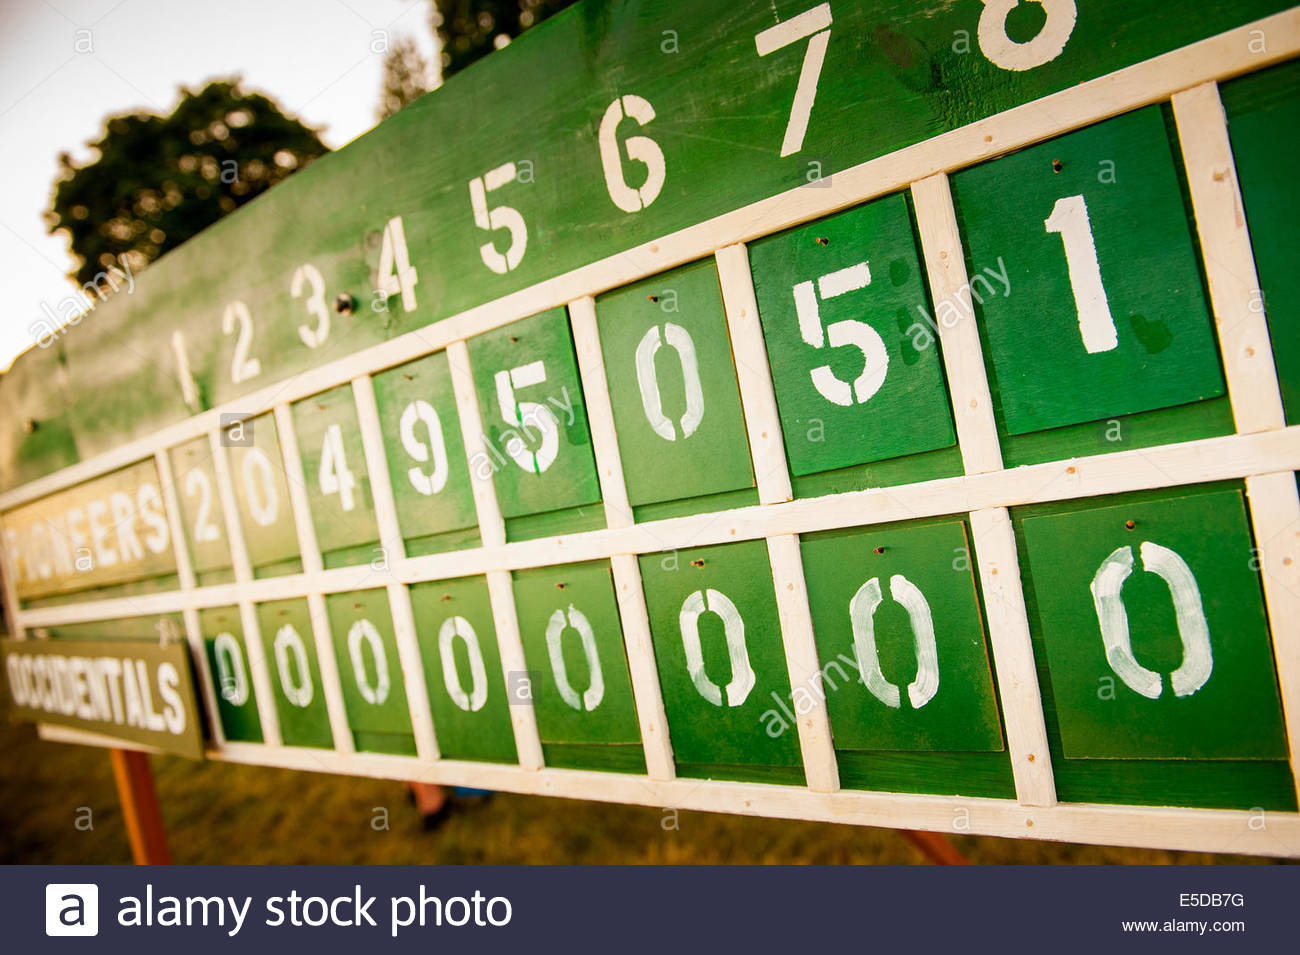 Vancouver, Washington, US. 26th July, 2014. The scoreboard reflects the Occidental's plight. On May 29, 1867, - Stock Image